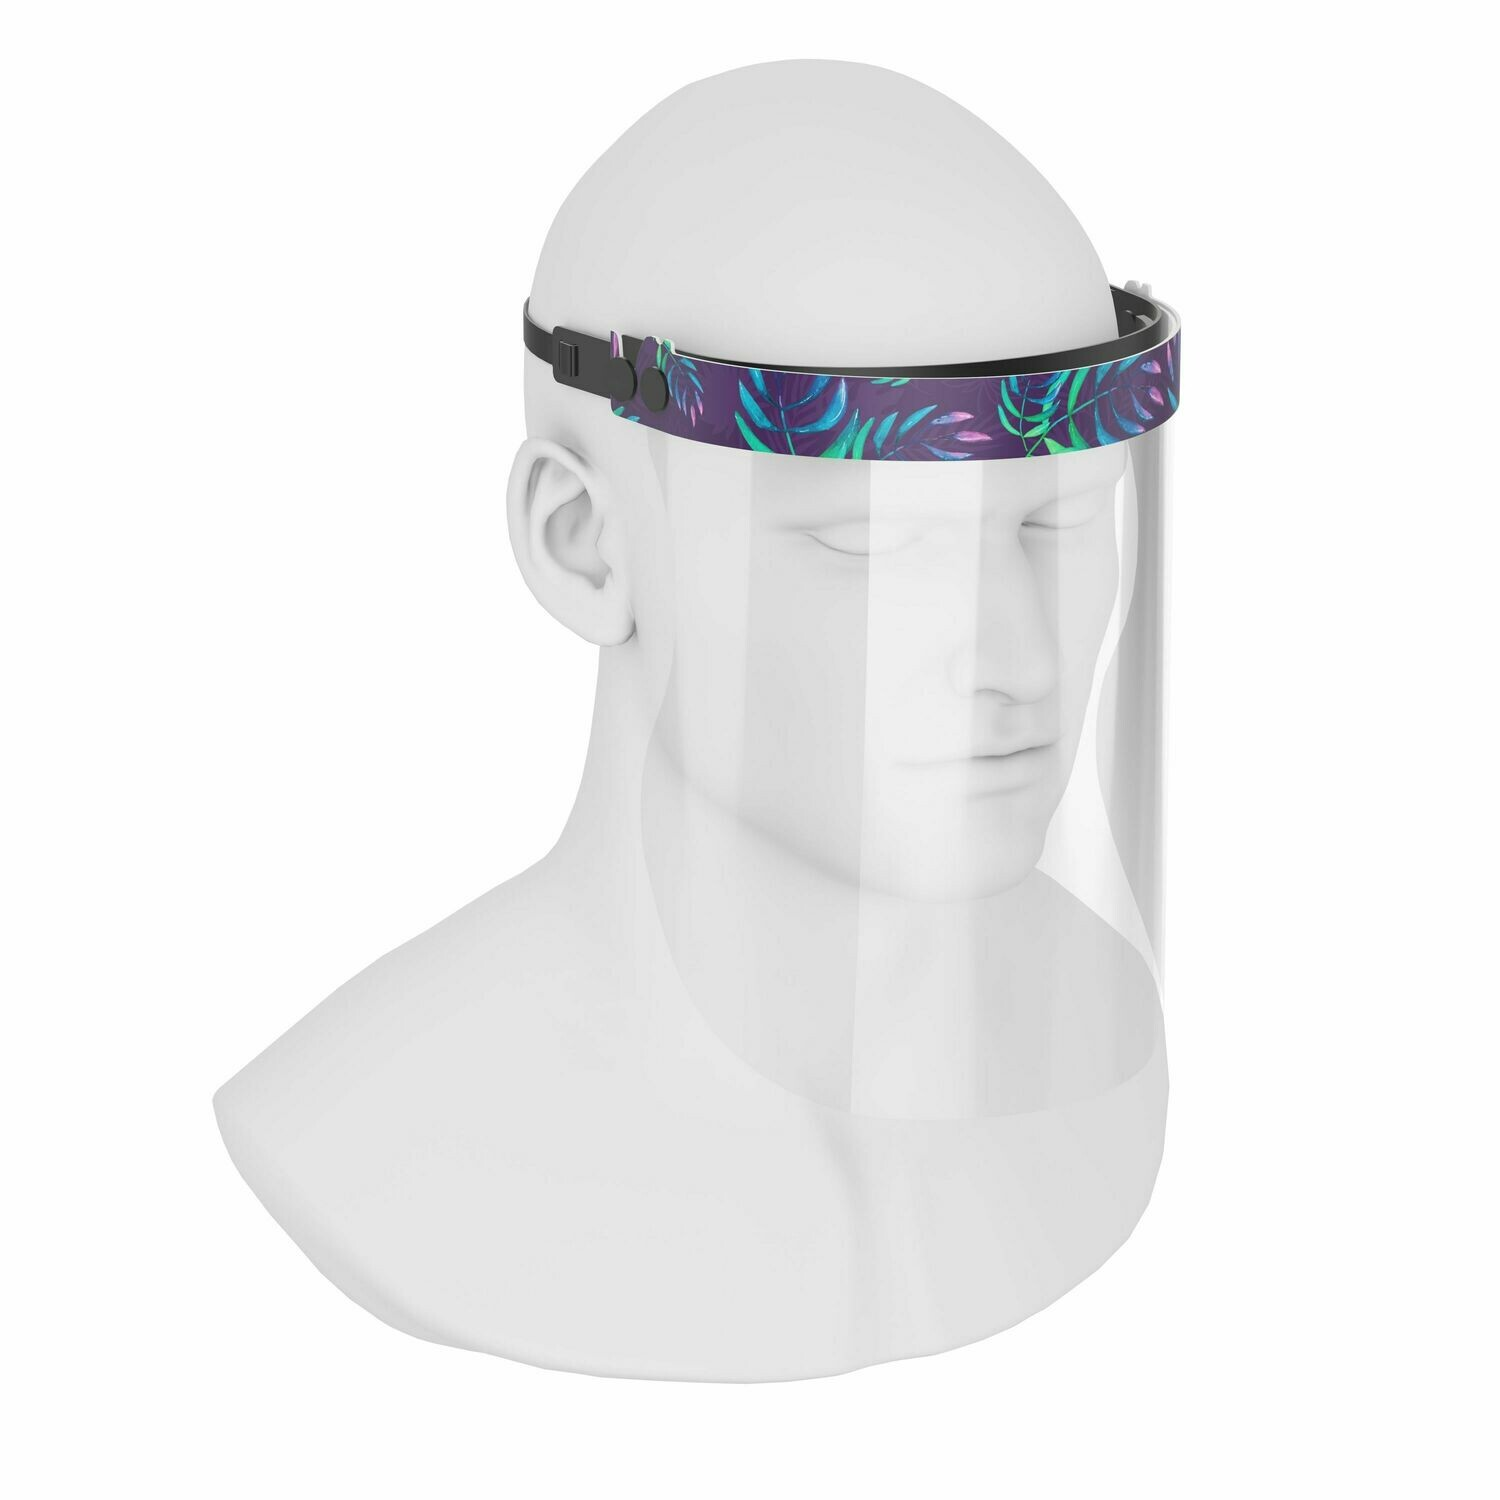 iSolay Face Shield Avatar Leaves